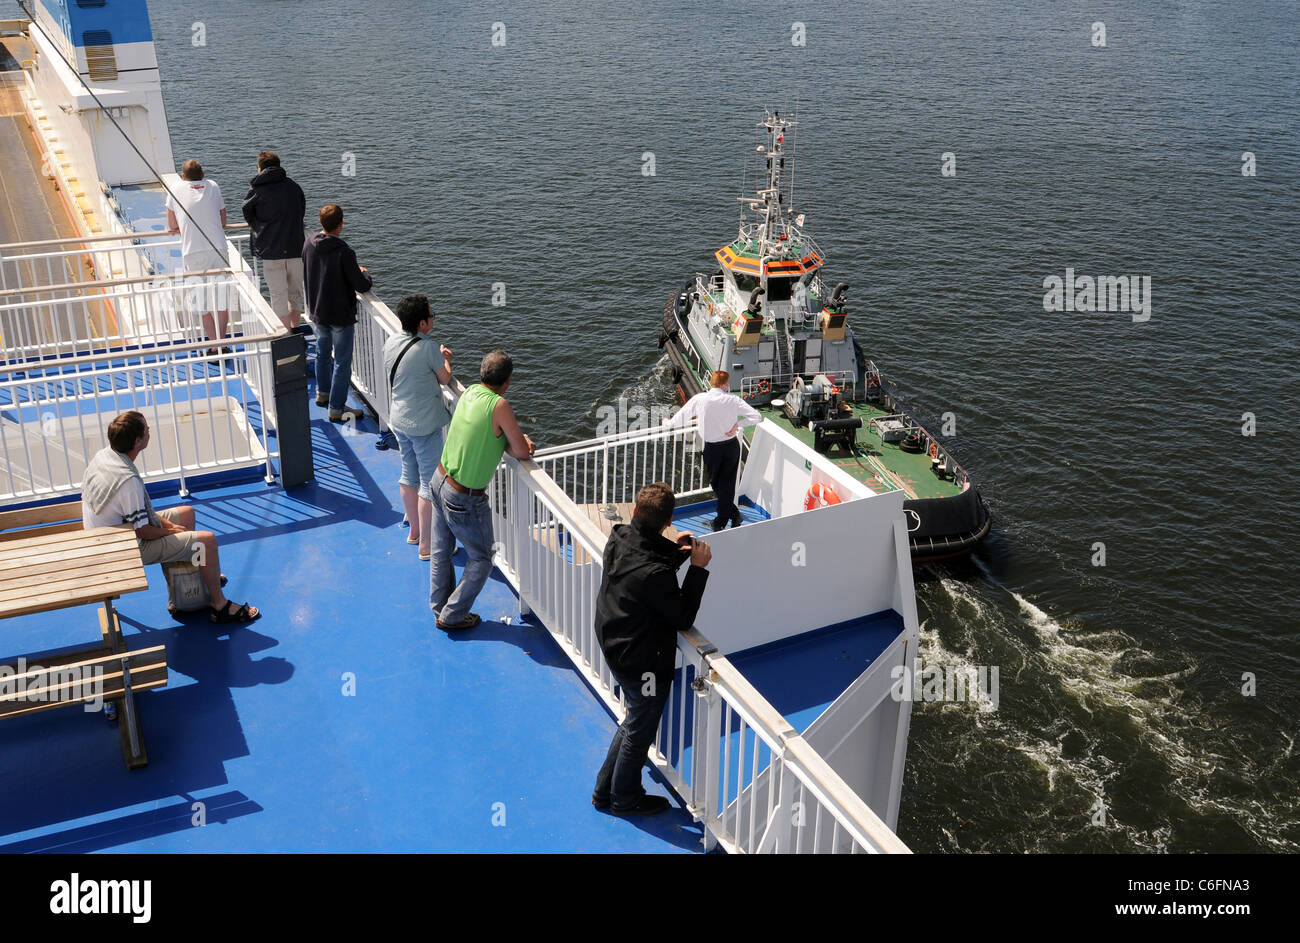 Promenade deck of the Finnmaid of Finnlines - Stock Image